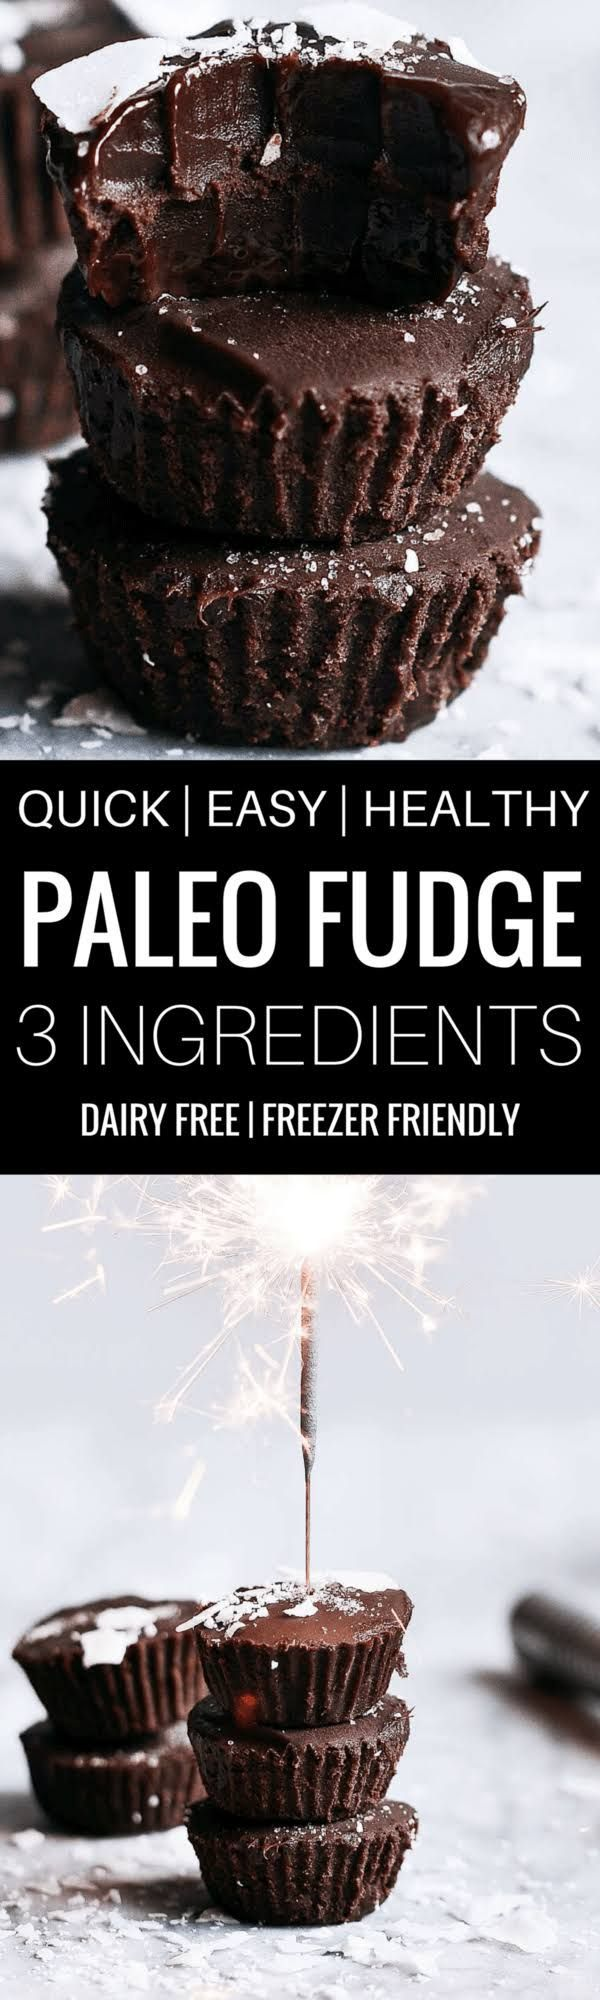 Ready for some chocolate goodness?! These easy paleo treats are deliciously rich and creamy. Made without dairy, these fudge bites are vegan… And dare I say, good for you? Ha ha, I once saw that pin o